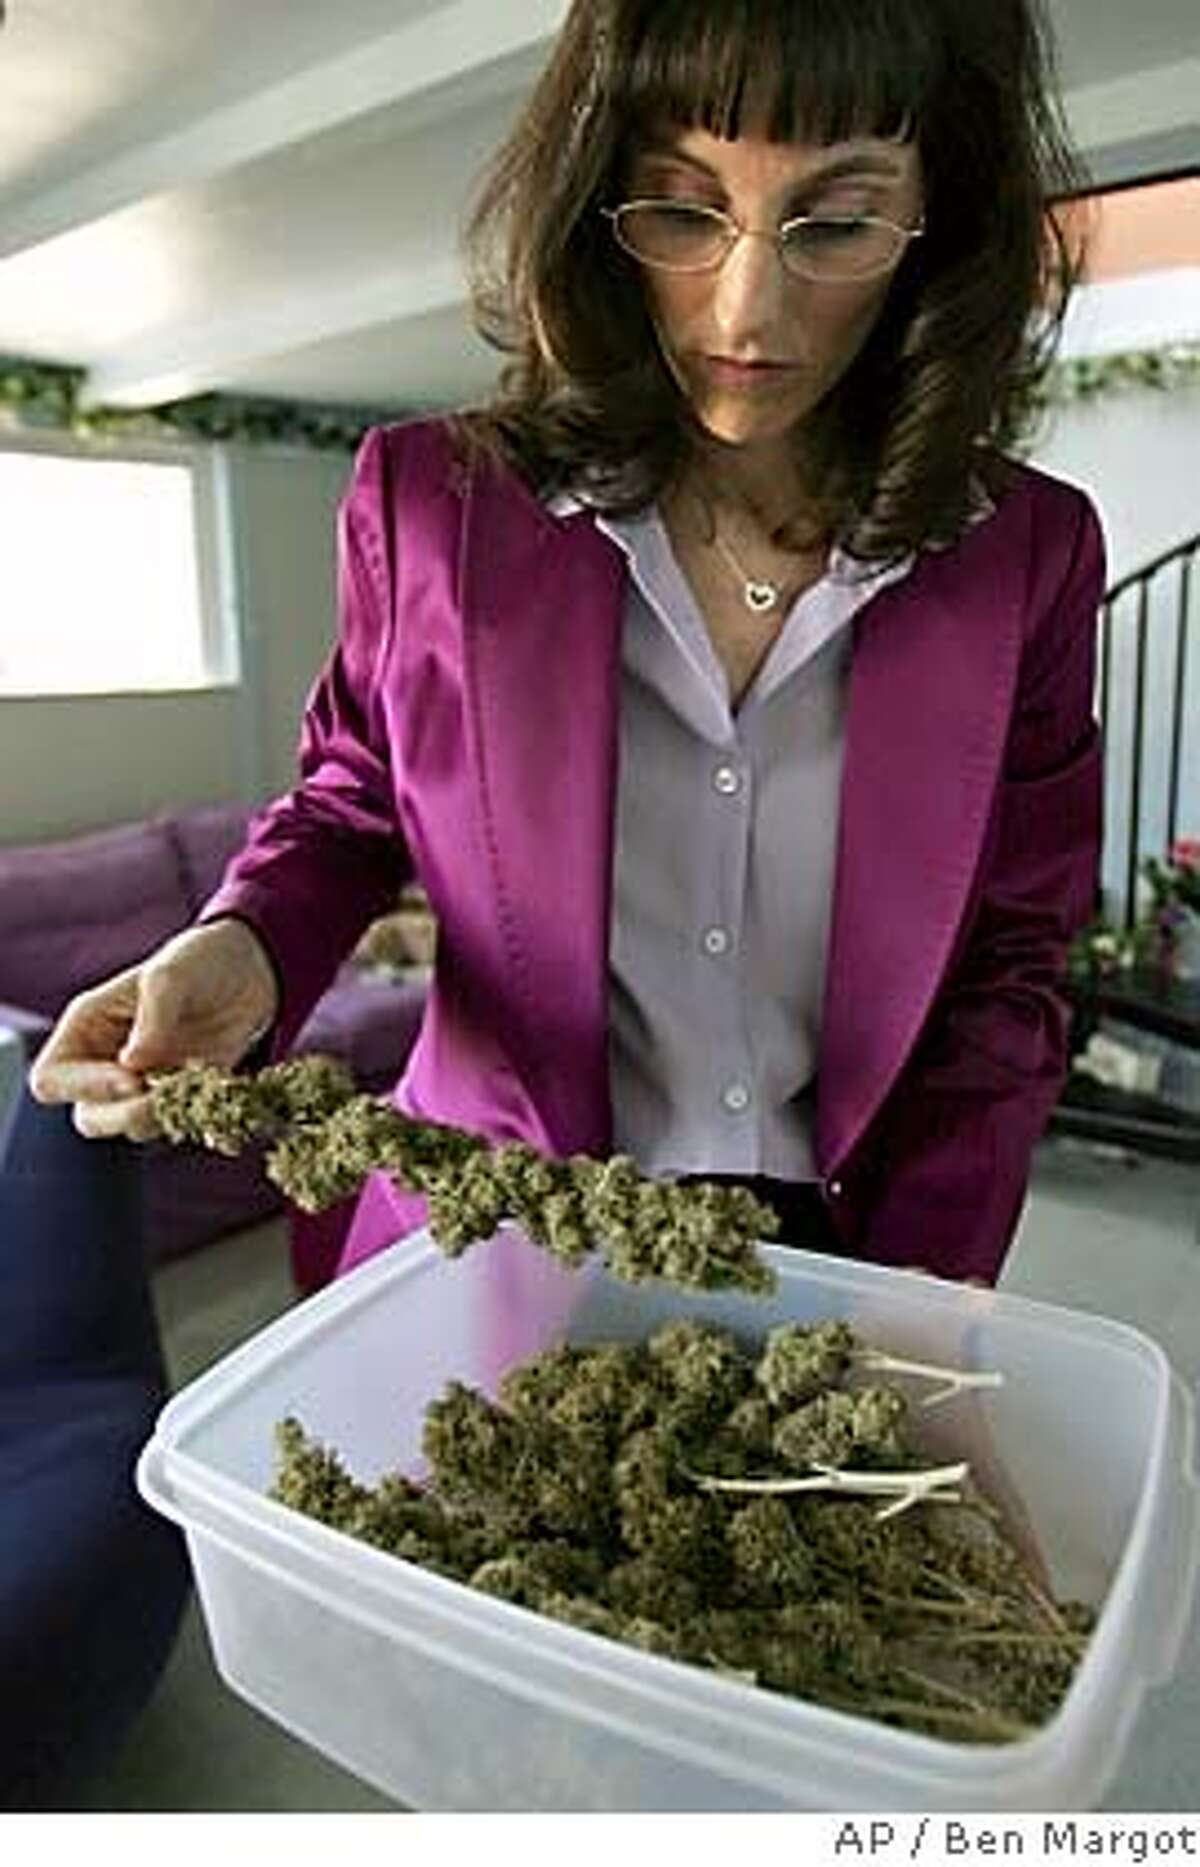 Angel Raich is seen with cannabis buds at her home Monday, June 6, 2005, in Oakland, Calif. Raich is one of two persons that sued then-U.S. Attorney General John Ashcroft, asking for a court order letting them smoke, grow or obtain marijuana without fear of arrest, home raids or other intrusion by federal authorities. Federal authorities may prosecute sick people whose doctors prescribe marijuana to ease pain, the Supreme Court ruled Monday, June 6, 2005, concluding that state laws don't protect users from a federal ban on the drug. (AP Photo/Ben Margot)